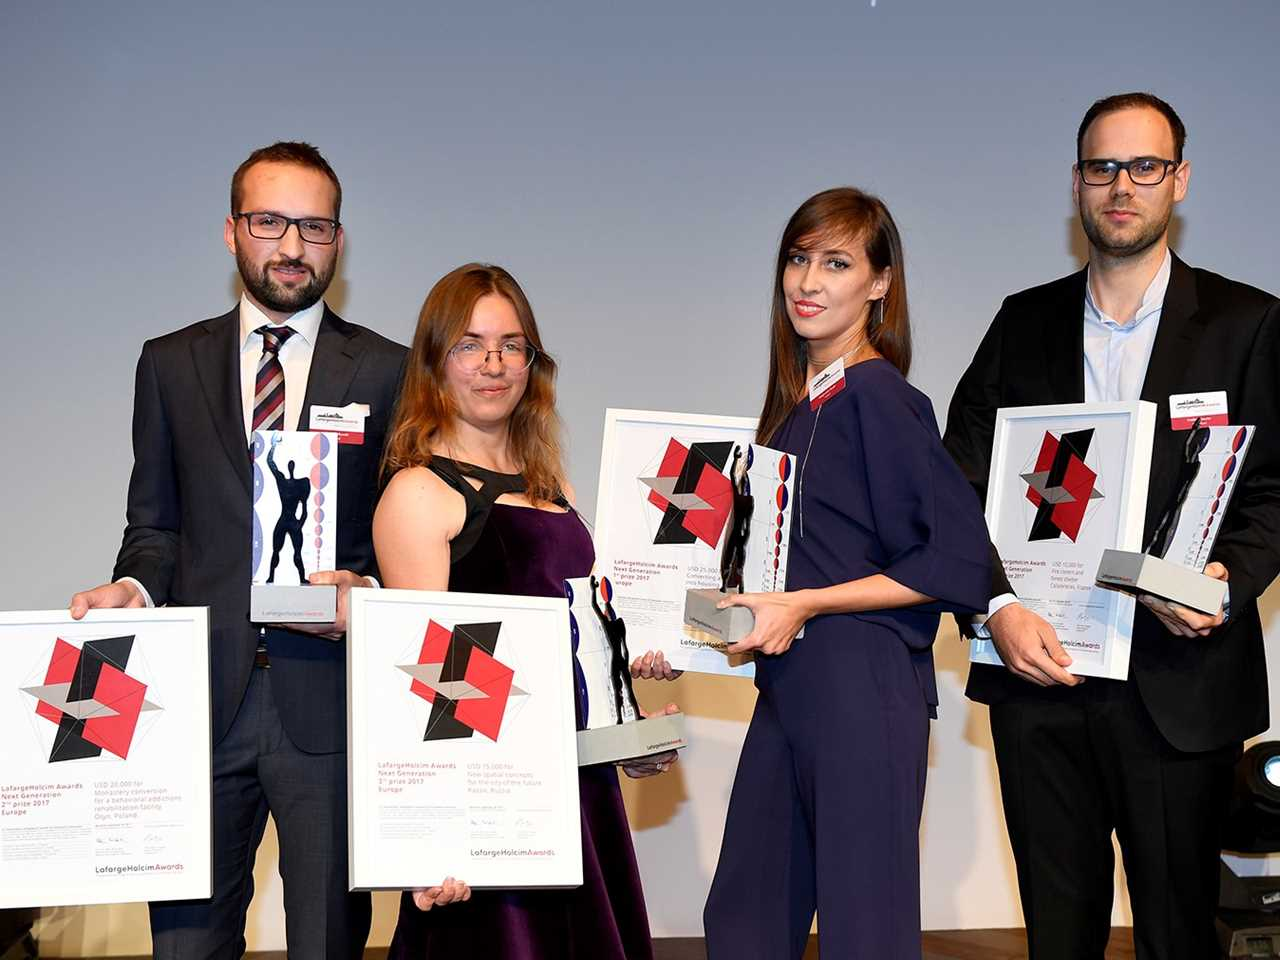 LafargeHolcim Awards 2017 for Europe prize handover ceremony, Marseille